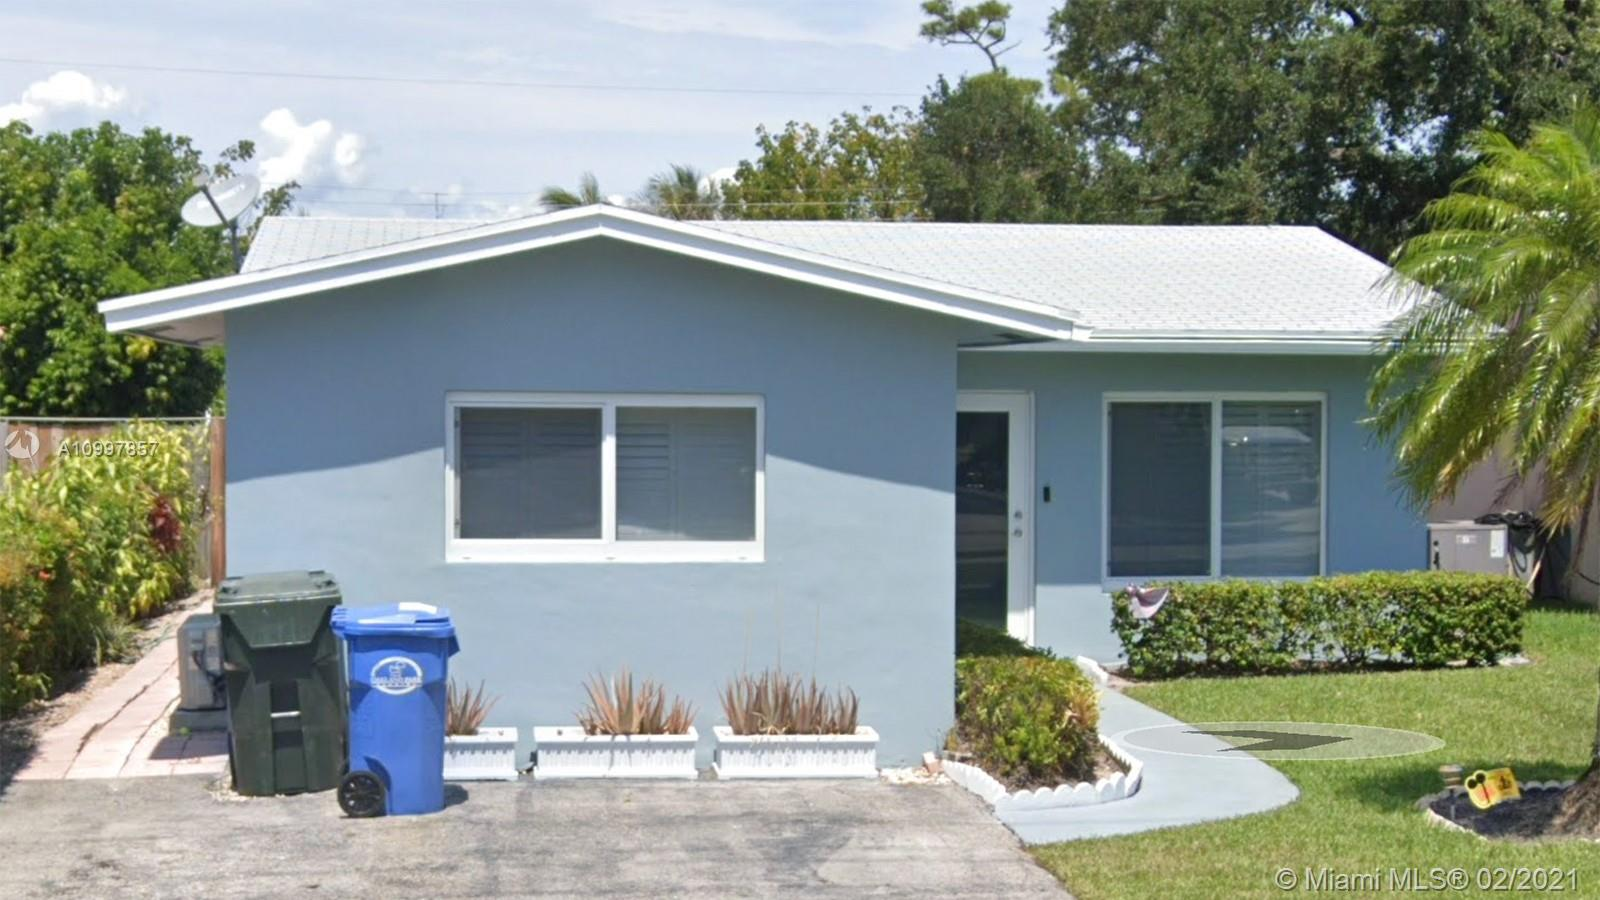 This lovely home with a large pool is located in the heart of Oakland Park & is exemplary of the pride of ownership. Kitchen is updated, bathroom remodeled, has impact windows & doors,r oof 3/yrs old, updated electrical panel, AC/5 yrs, water heater/3 yrs, has $36K updated plumbing/PVC, pool pump/2 yrs. As per BCPA legally a 3/1.5 but shows like a 2/1 with bonus room/den & a poolside cabana bath. 3rd bedroom is like a den, must pass-through it to access master bedroom. 1/2 bath (sink & toilet only) is outside, accessible through pool area only. Integrated thermostat & security cameras included. Blocks away from Downtown Oakland Park & the Culinary District. The beach, shopping, highways, access to Wilton Manors & Ft Lauderdale only 10-15 minutes.Makes a great AirBNB. Furniture negotiable.